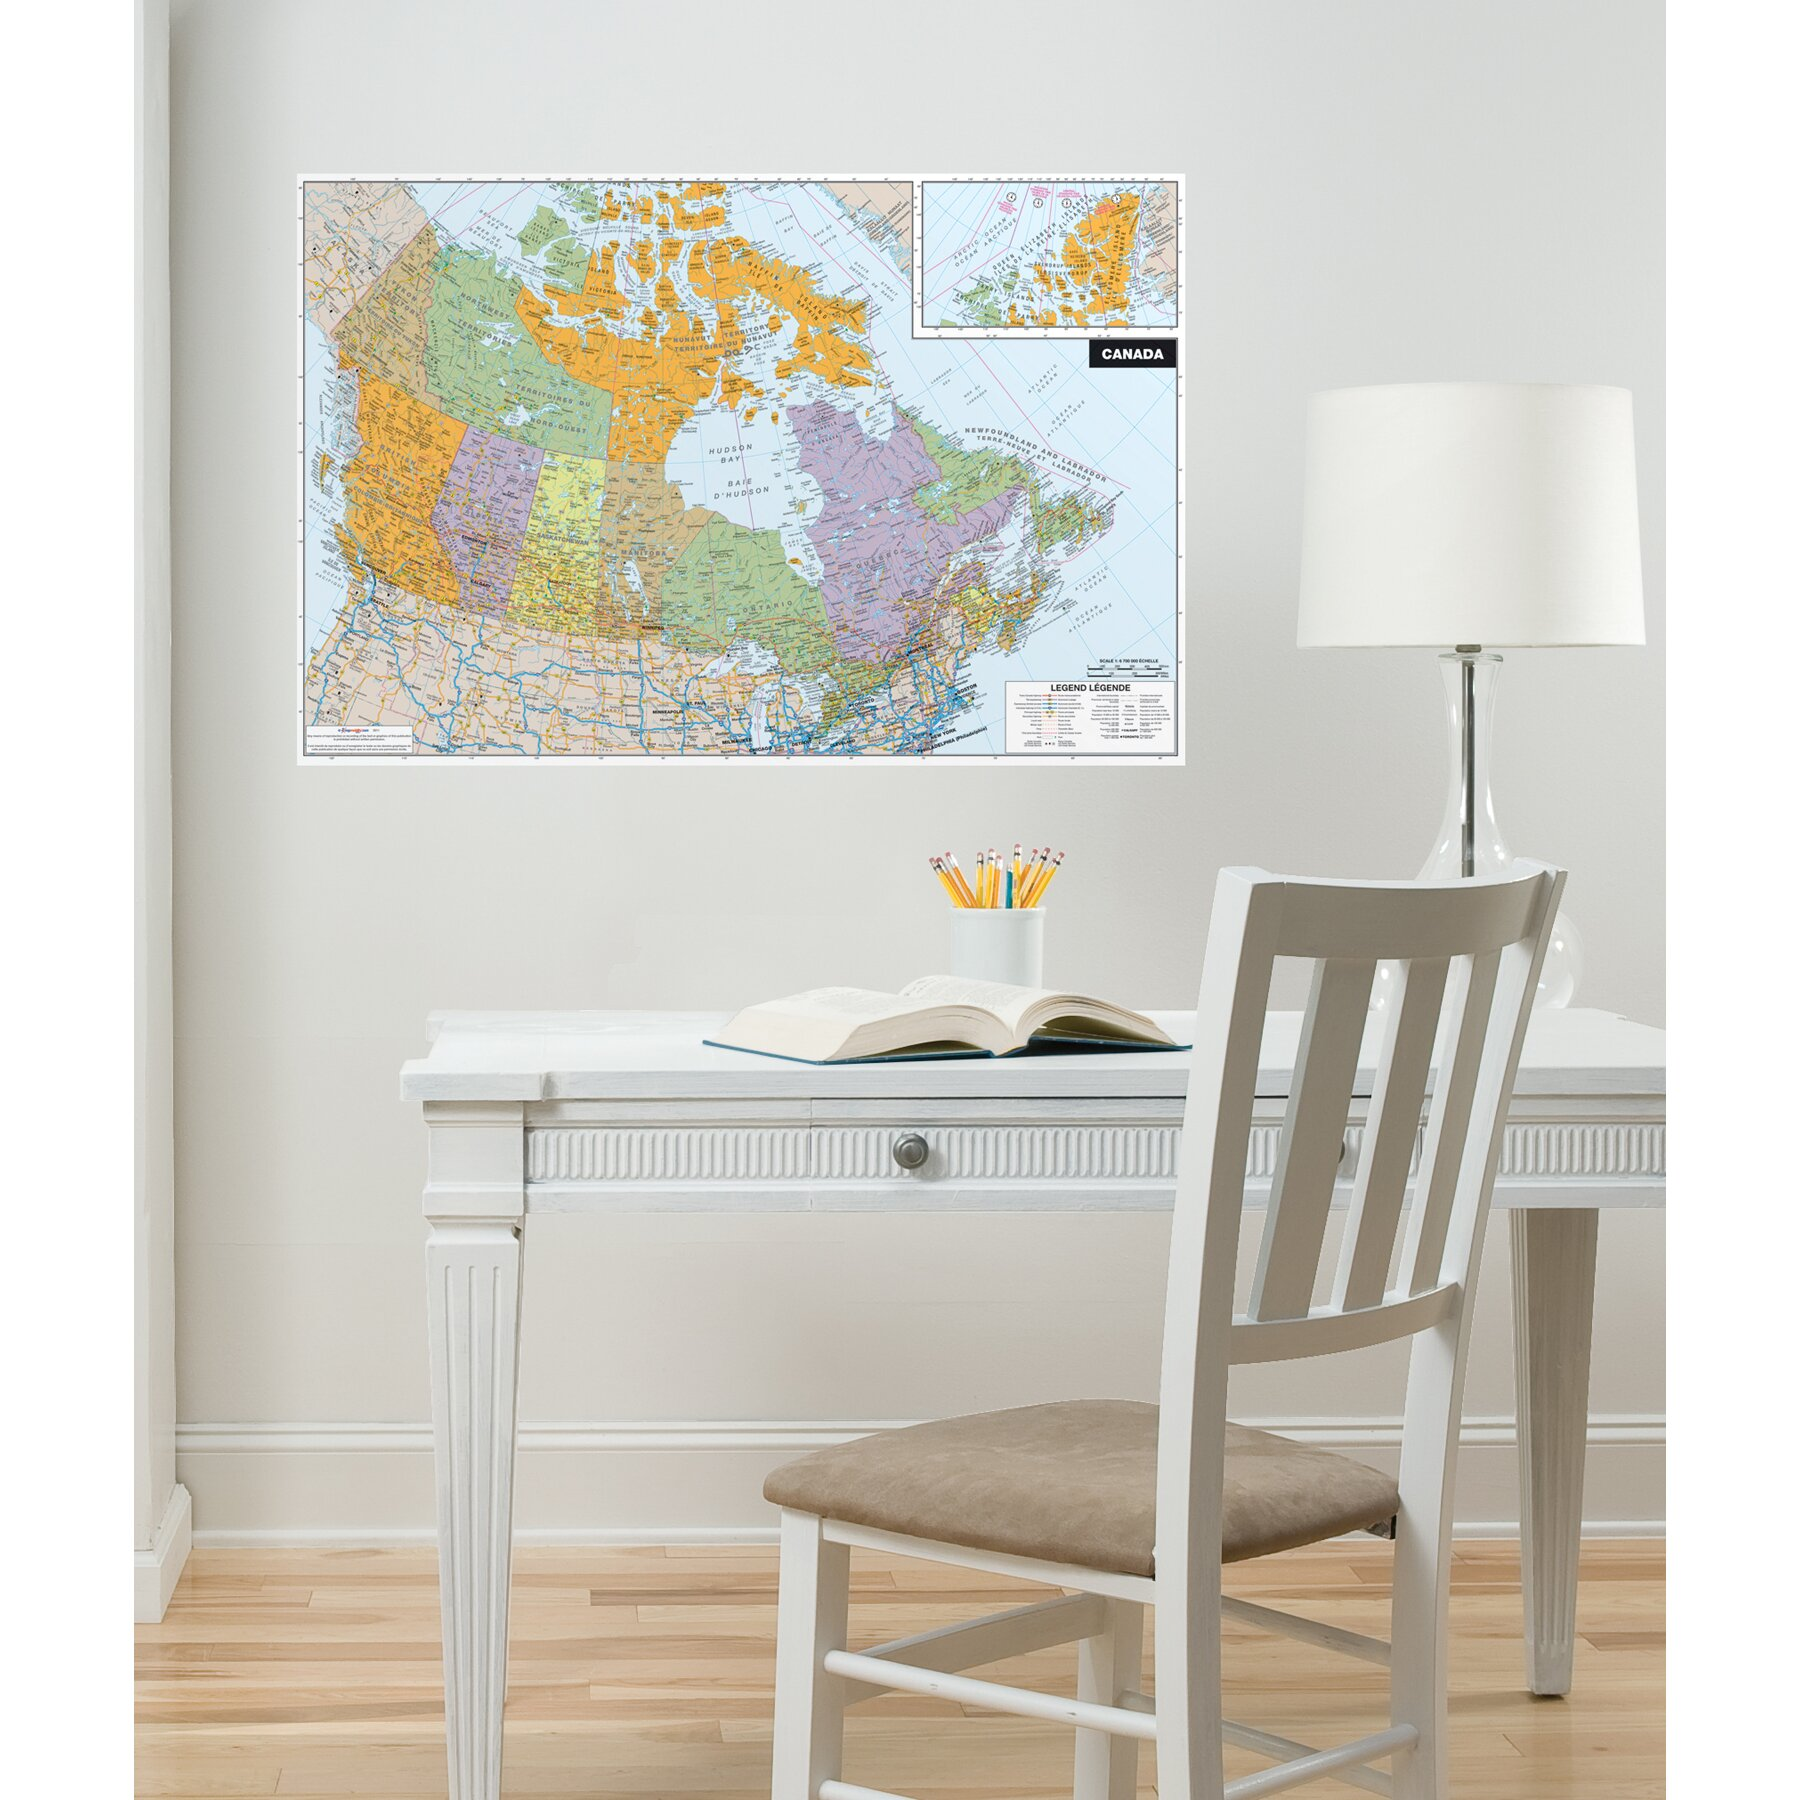 Brewster home fashions wallpops dry erase canada wall for Brewster home fashions wall mural